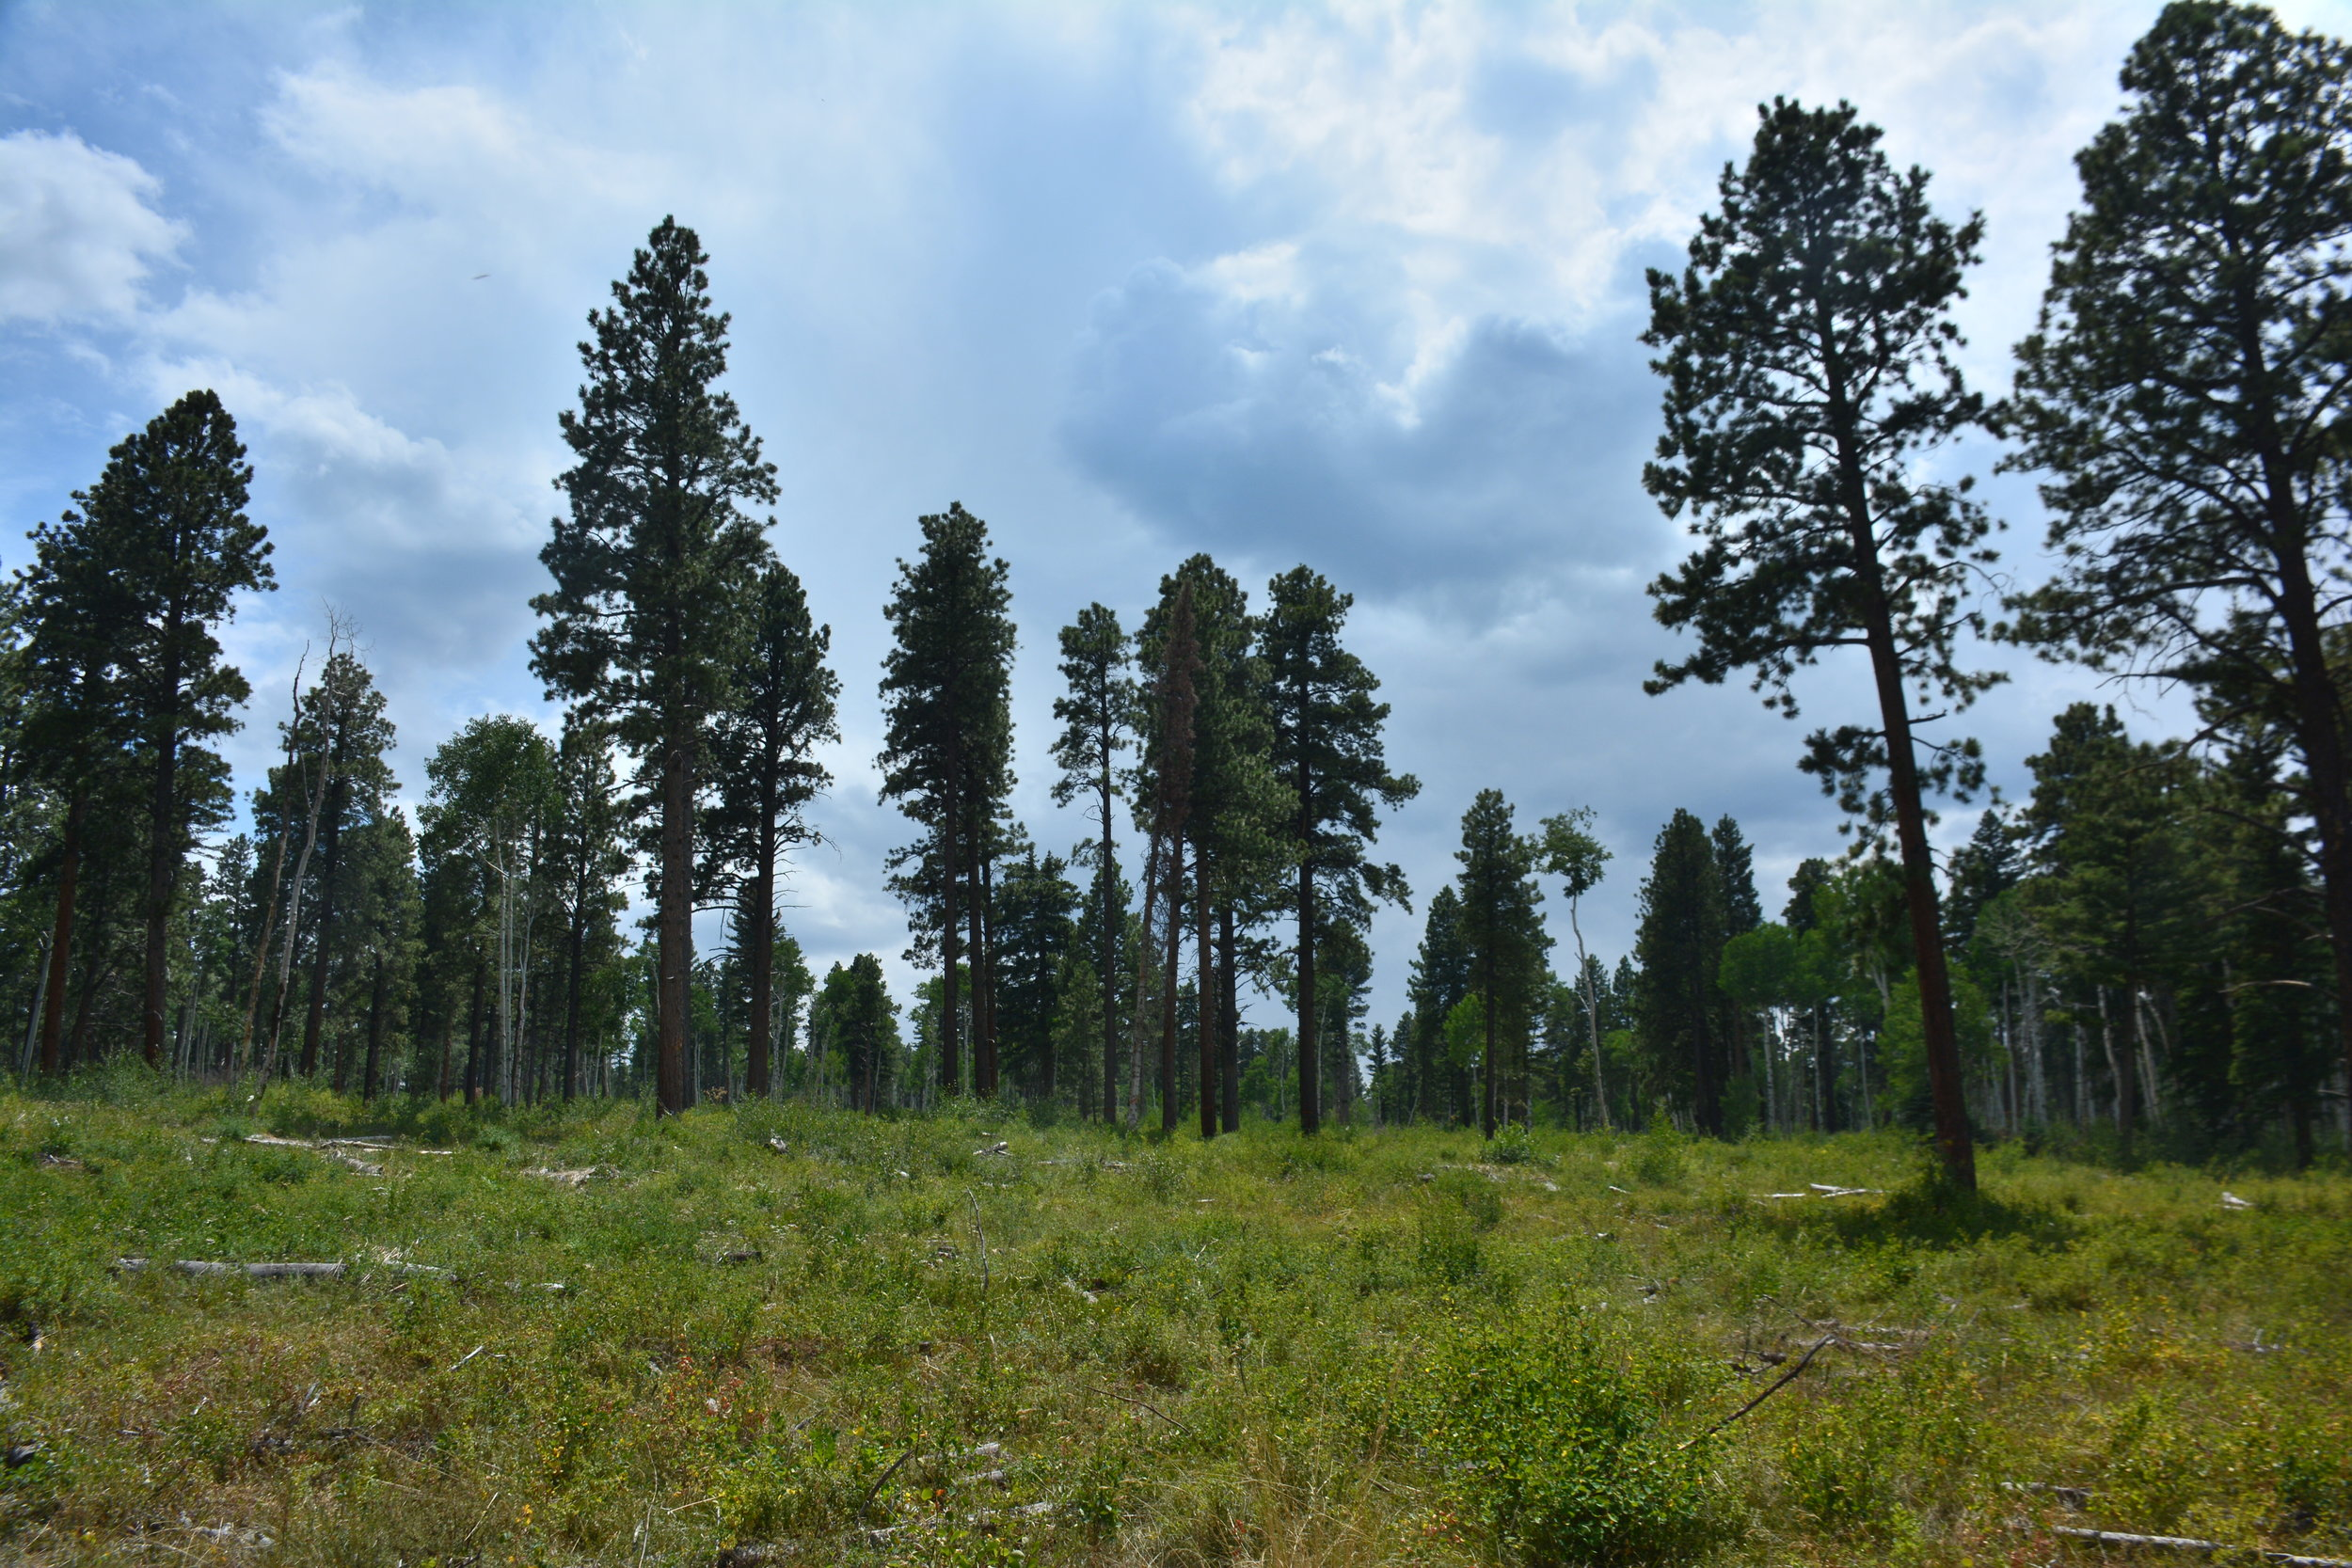 An overly-dense forest was thinned to reduce the danger of catastrophic wildfire and to improve wildlife habitat.